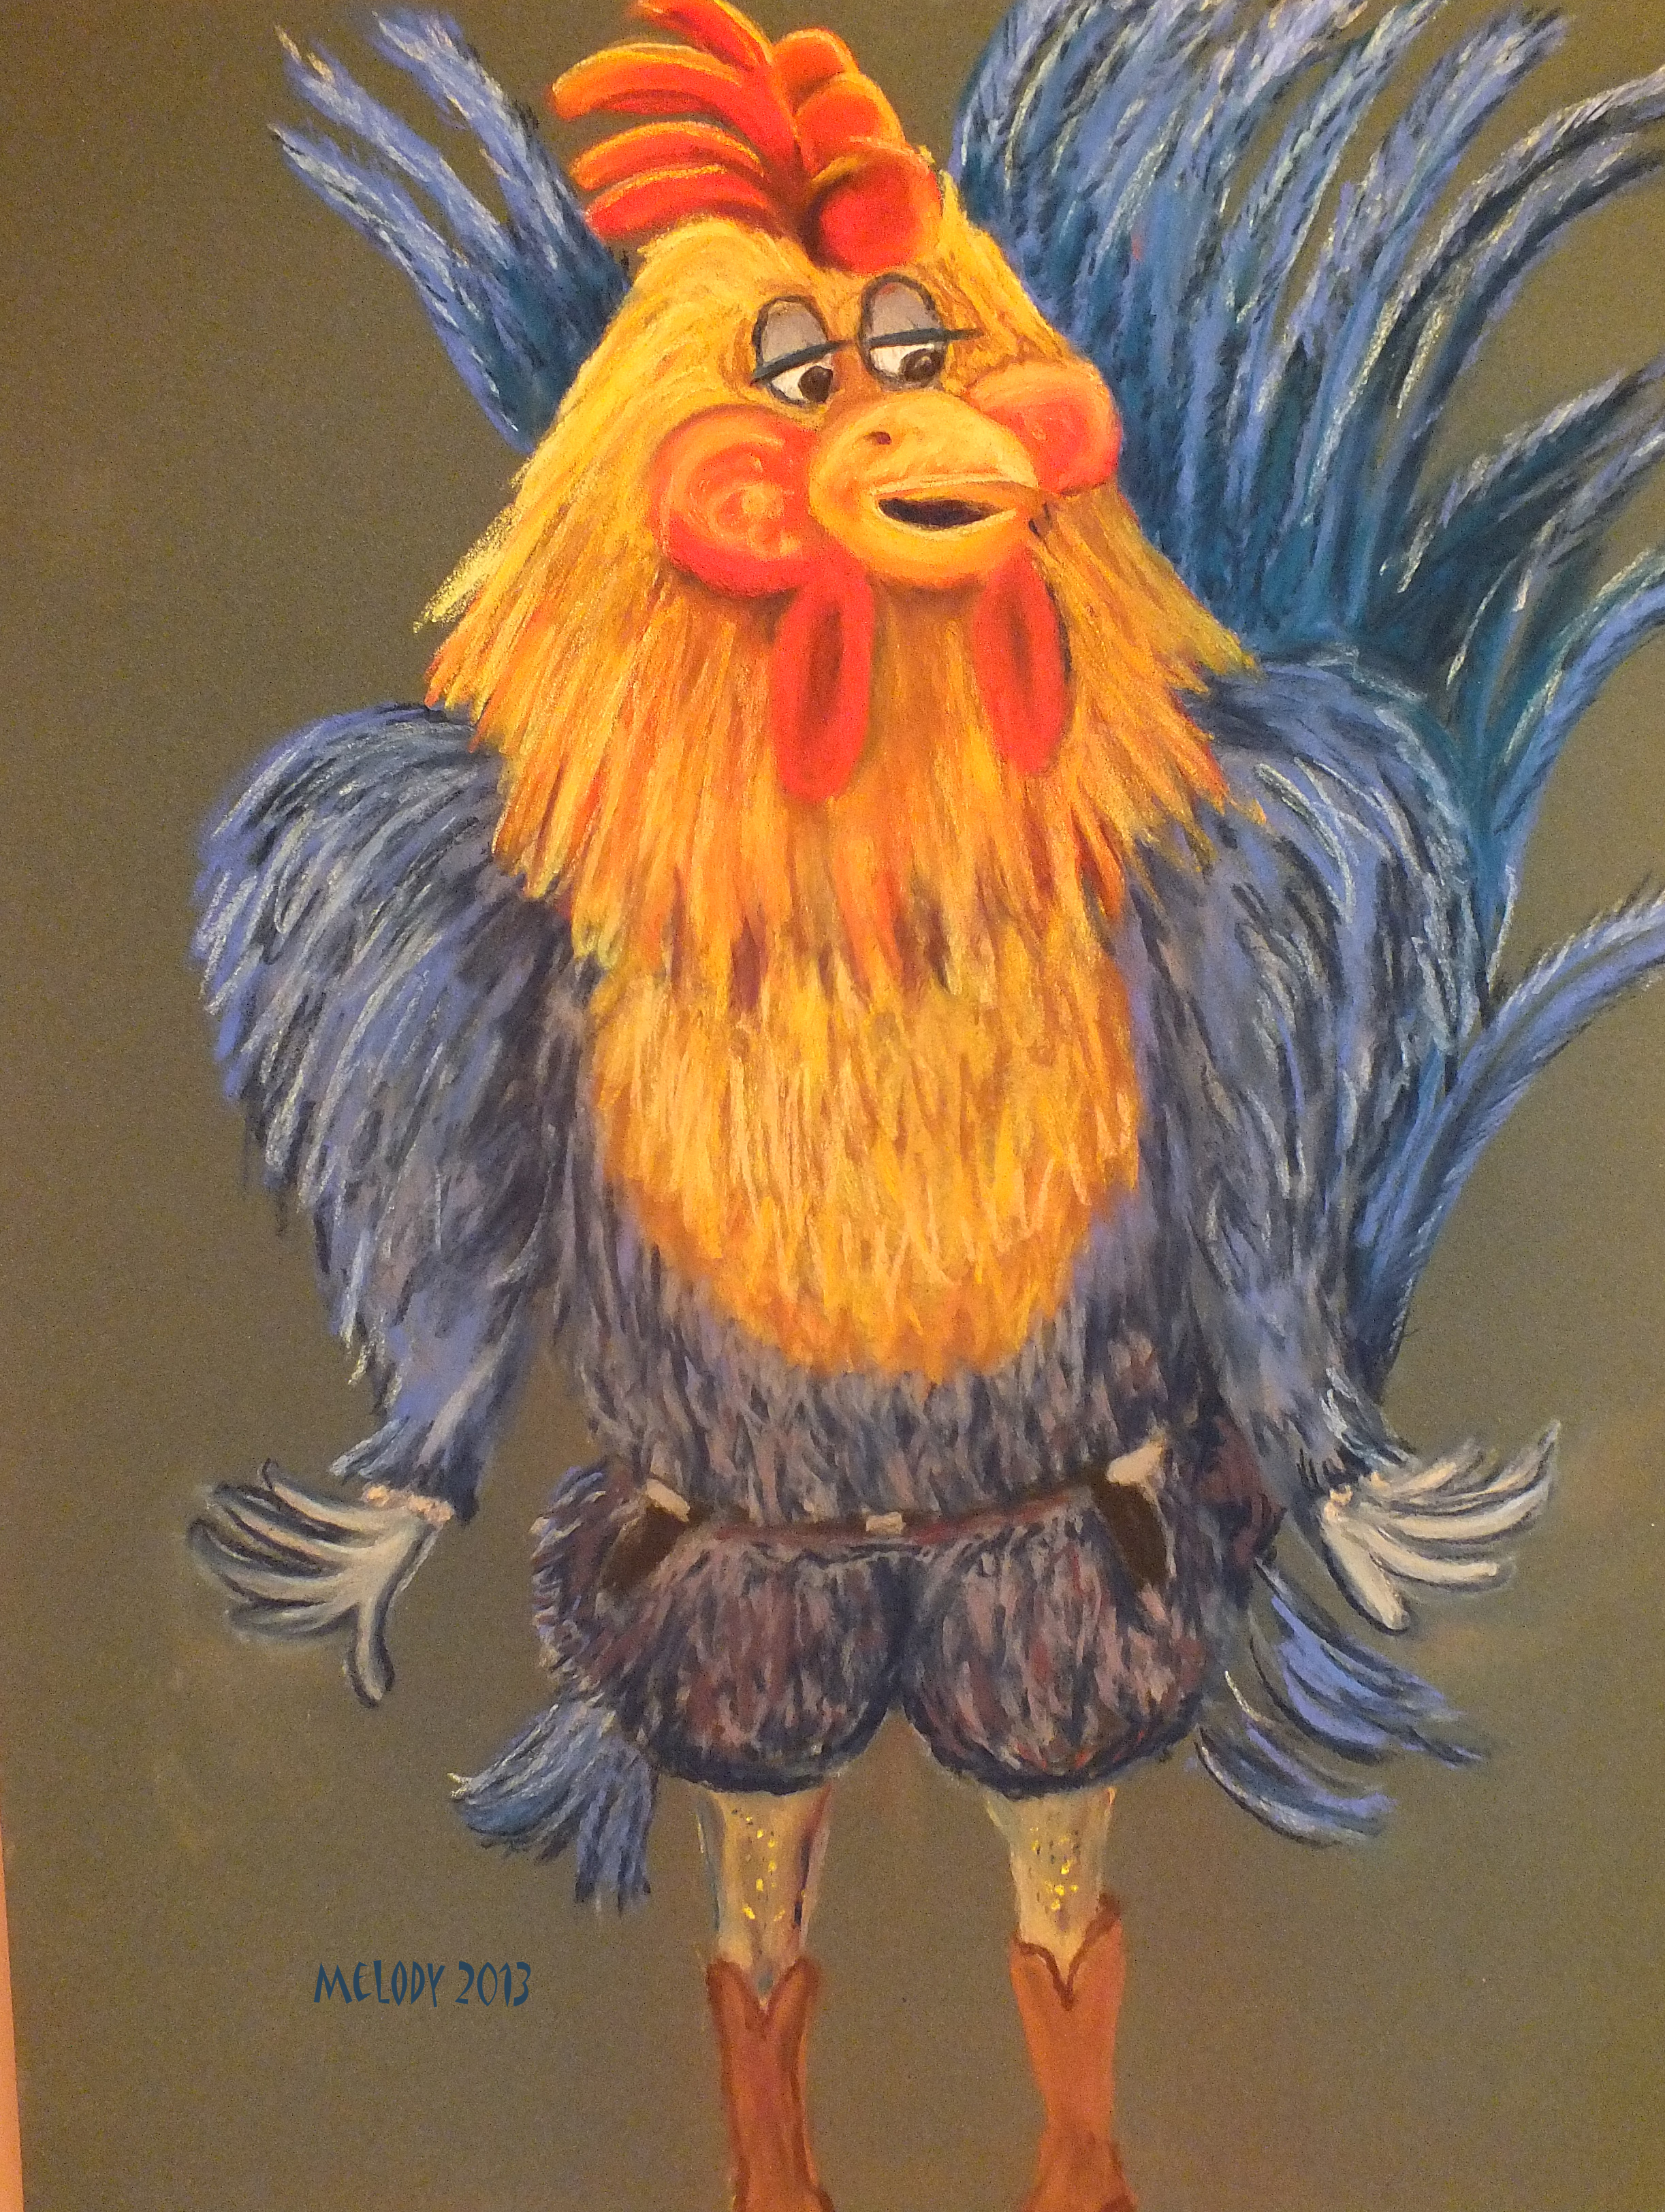 A GMO Time Traveling Fowl